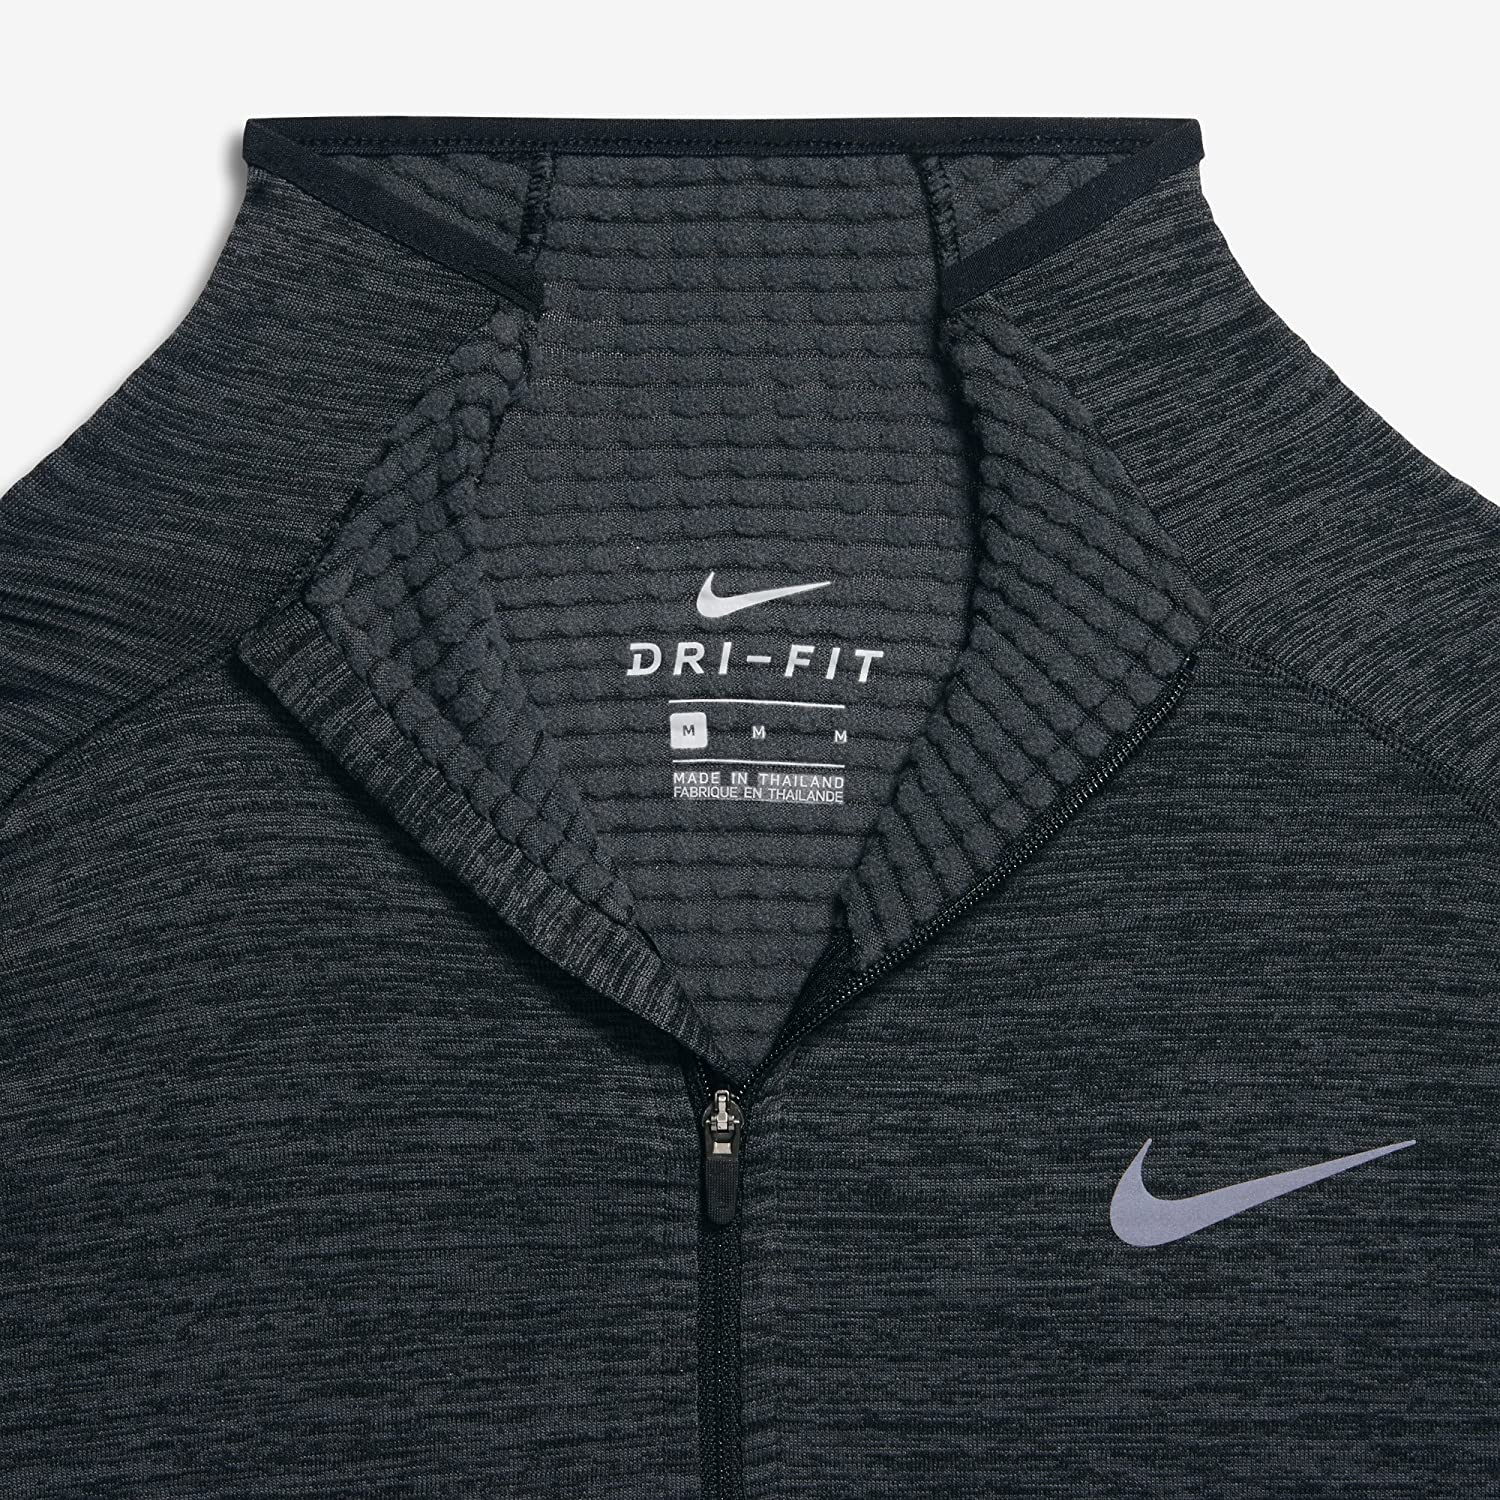 Amazon.com: Nike Sphere Element Men's Long Sleeve Running Top, Black/Heather /Anthracite, Large: Health & Personal Care